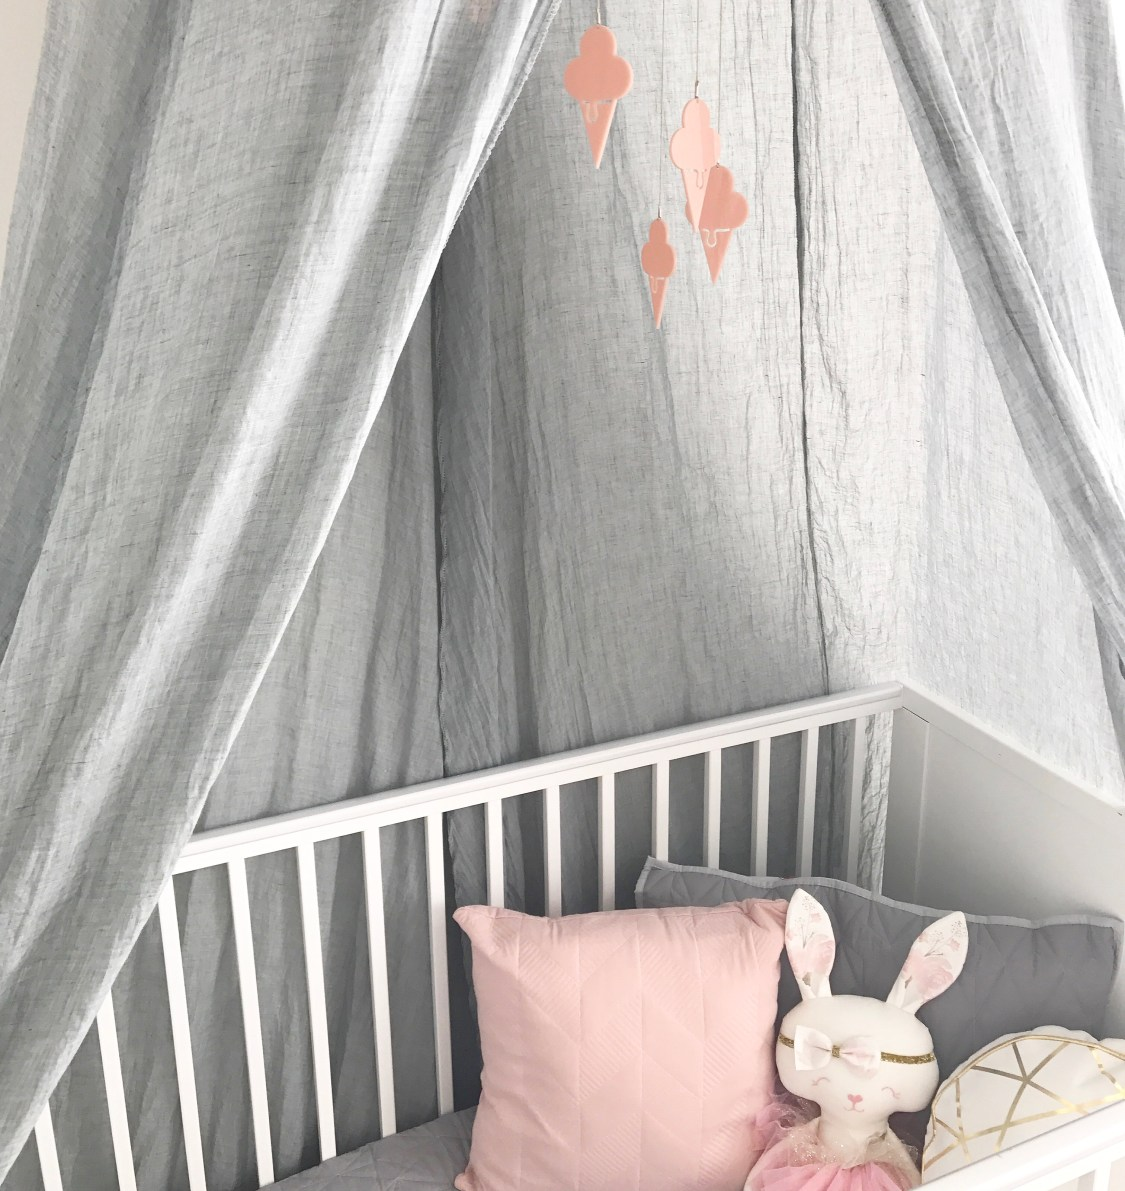 Real Nursery Style - Ivy's light, bright and contemporary nursery | www.nestlingcollective.com